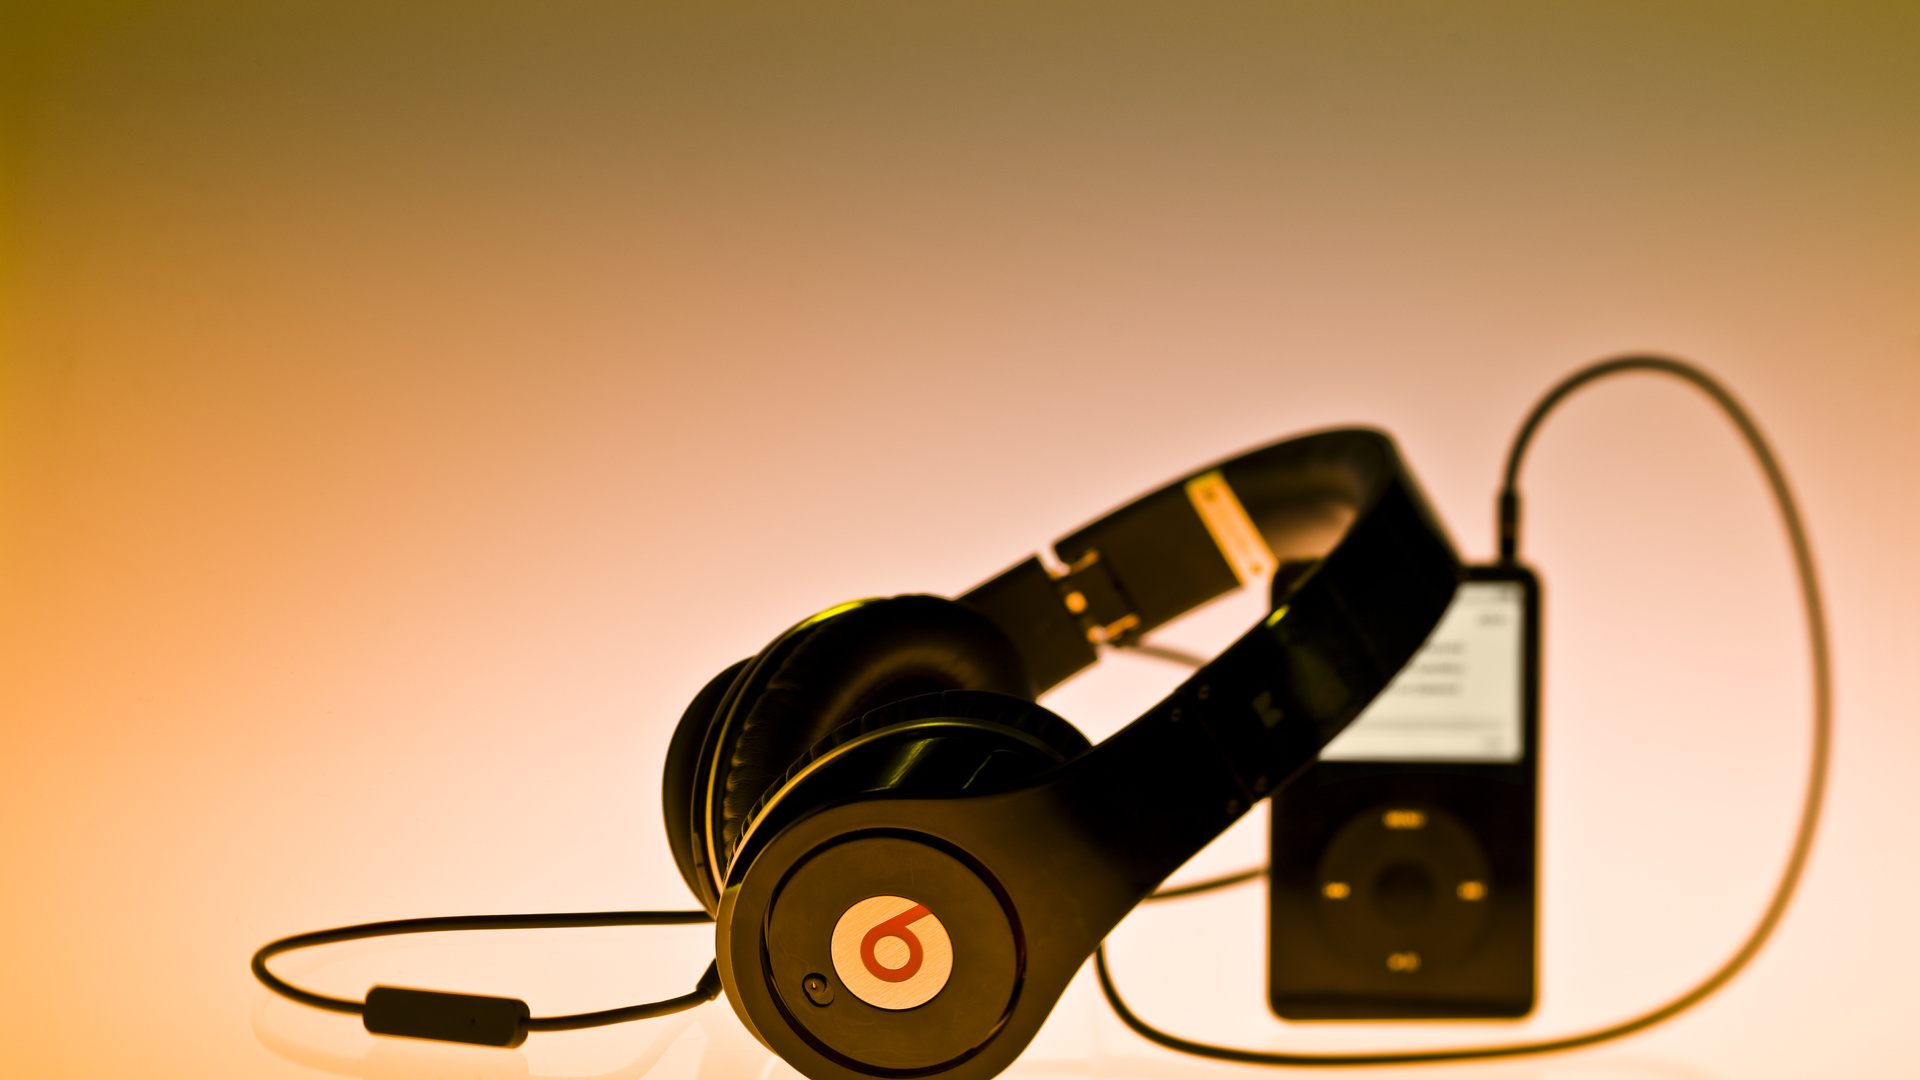 Good Wallpaper Music Headphone - music-hd-wallpapers-6  Pic_23387.jpg